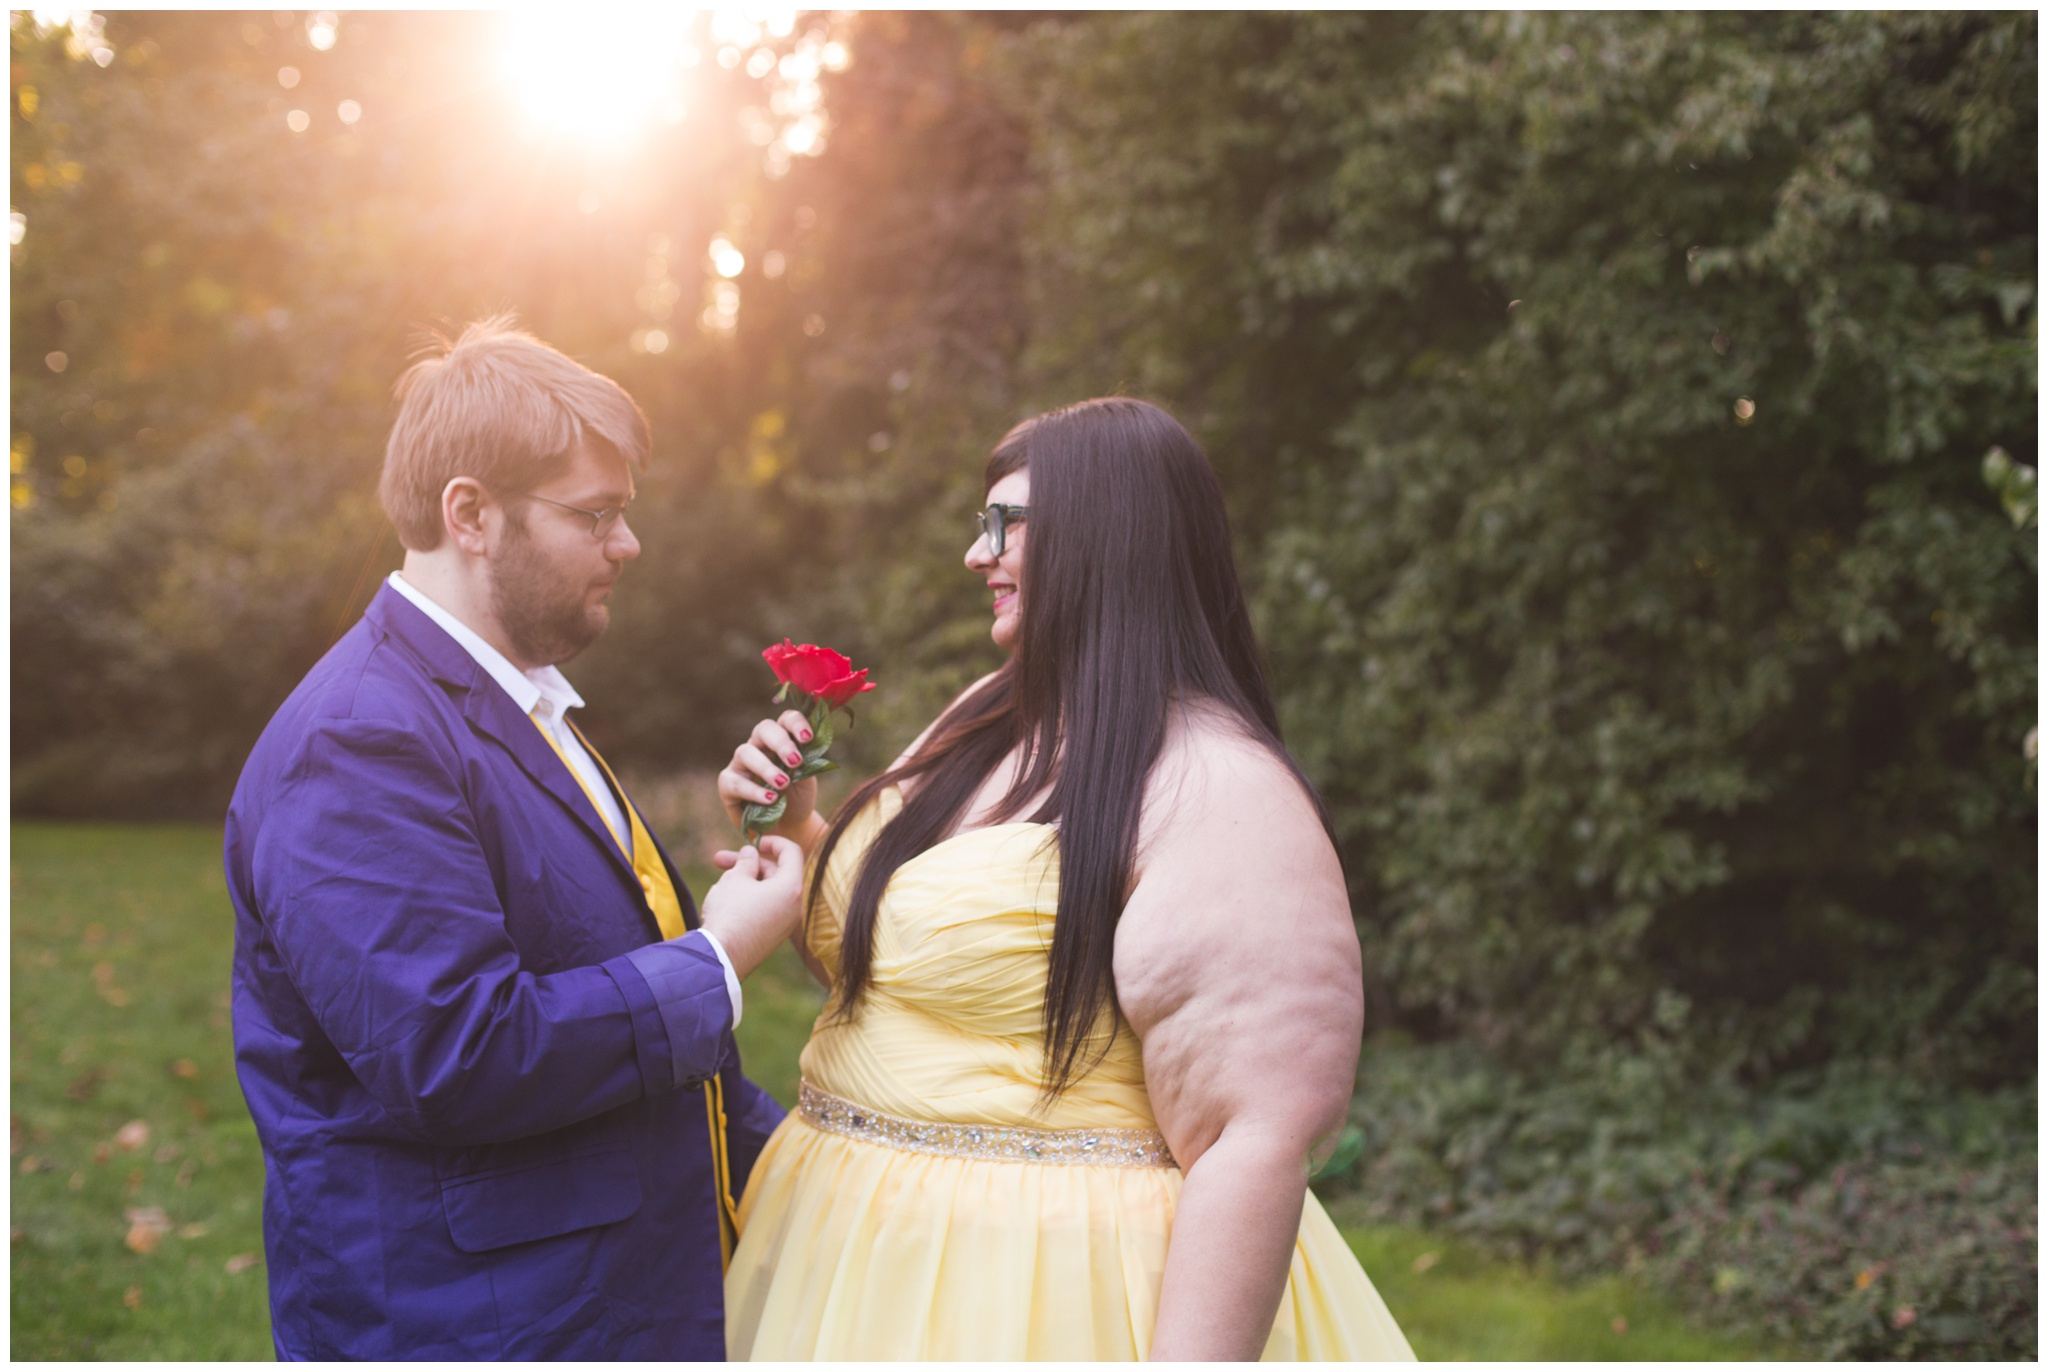 100 Acre Woods engagement session in downtown Indianapolis